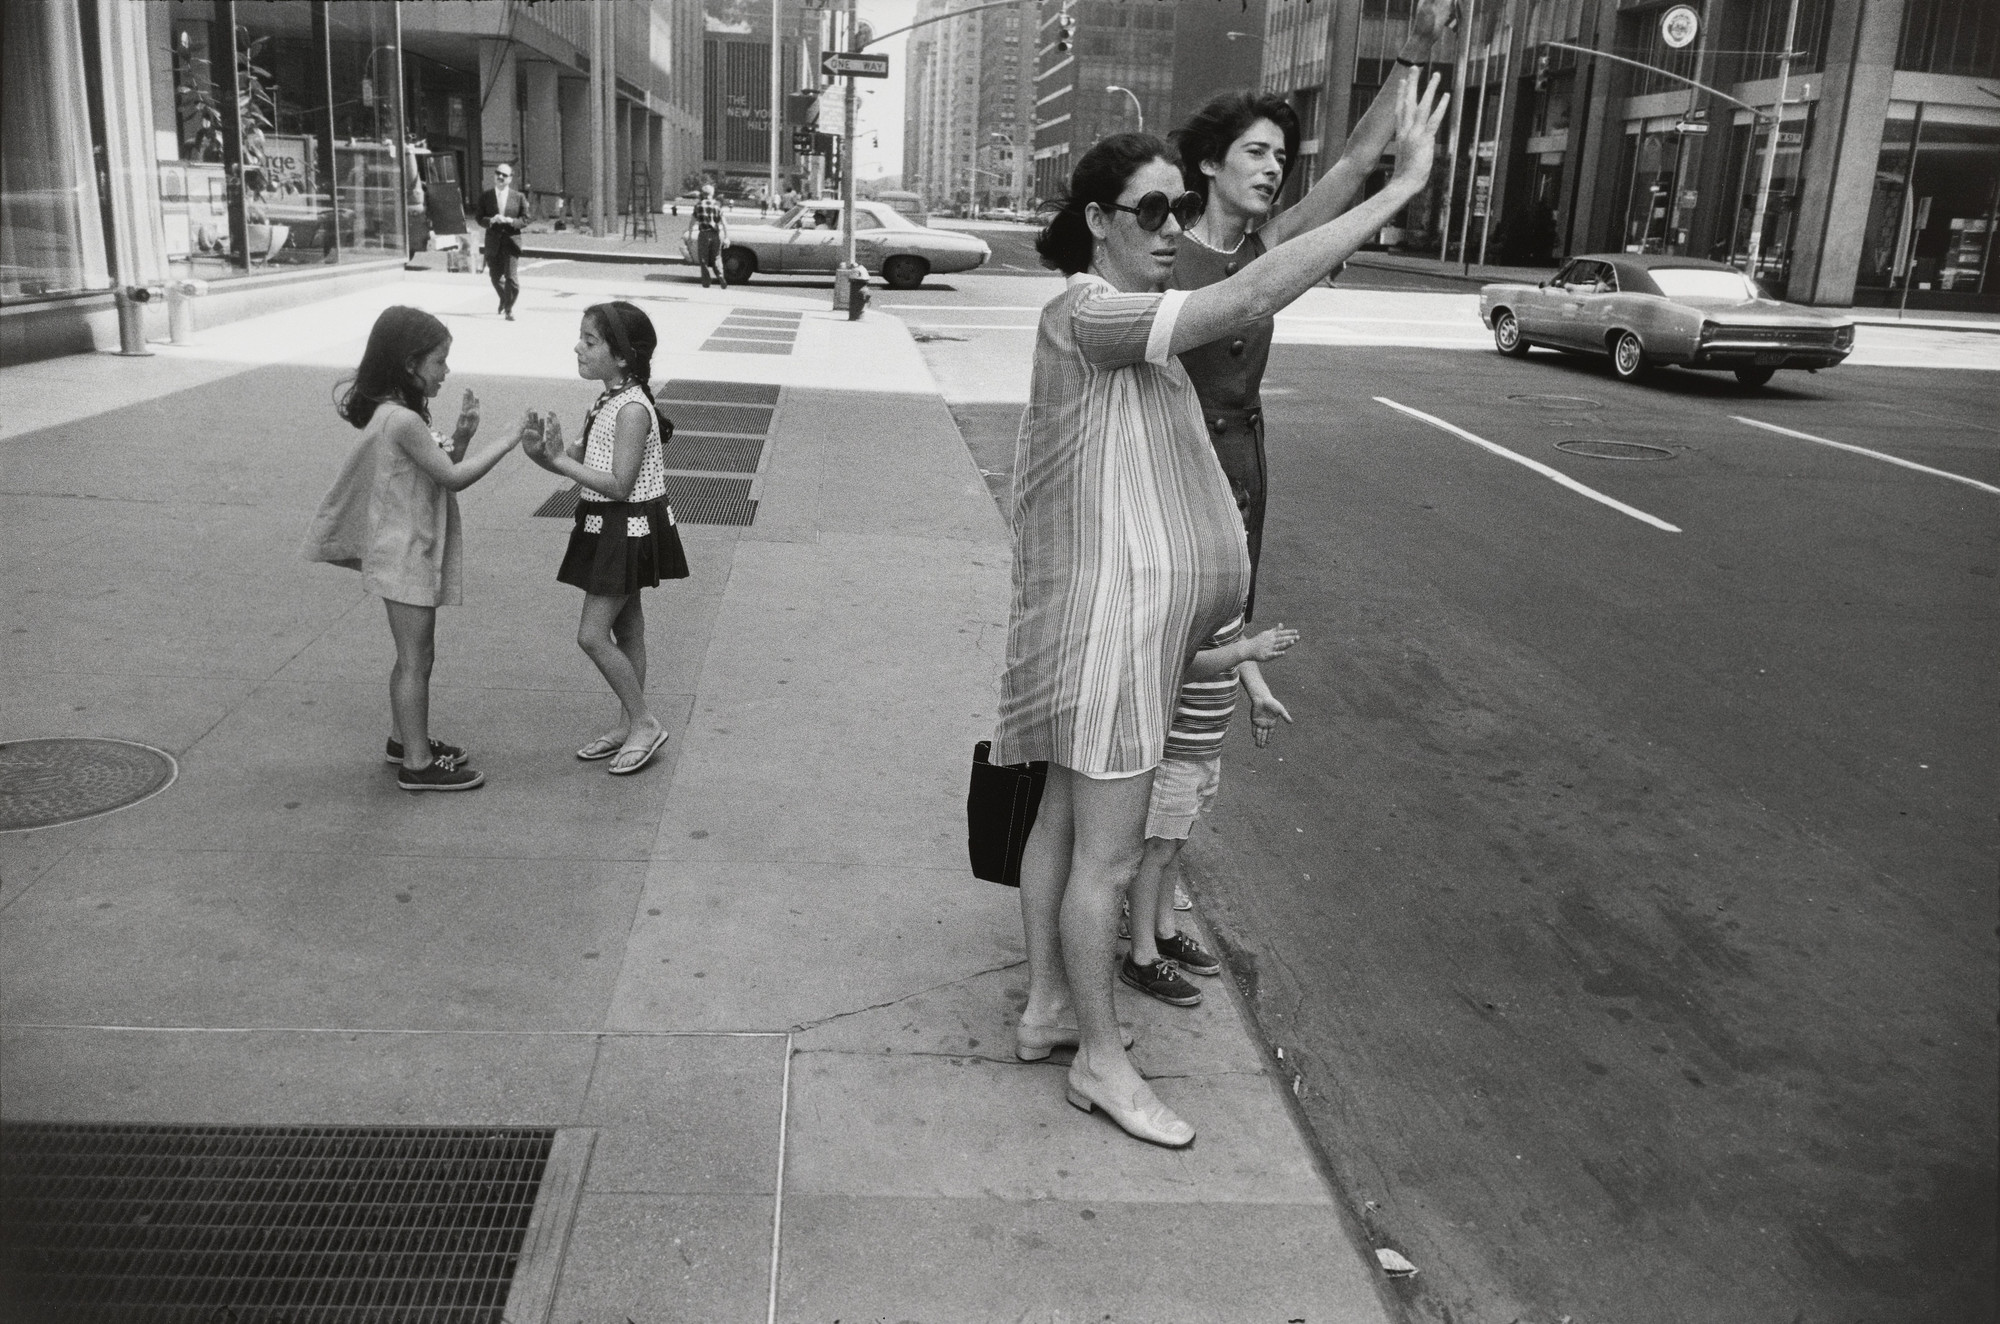 Garry Winogrand. New York City. 1968